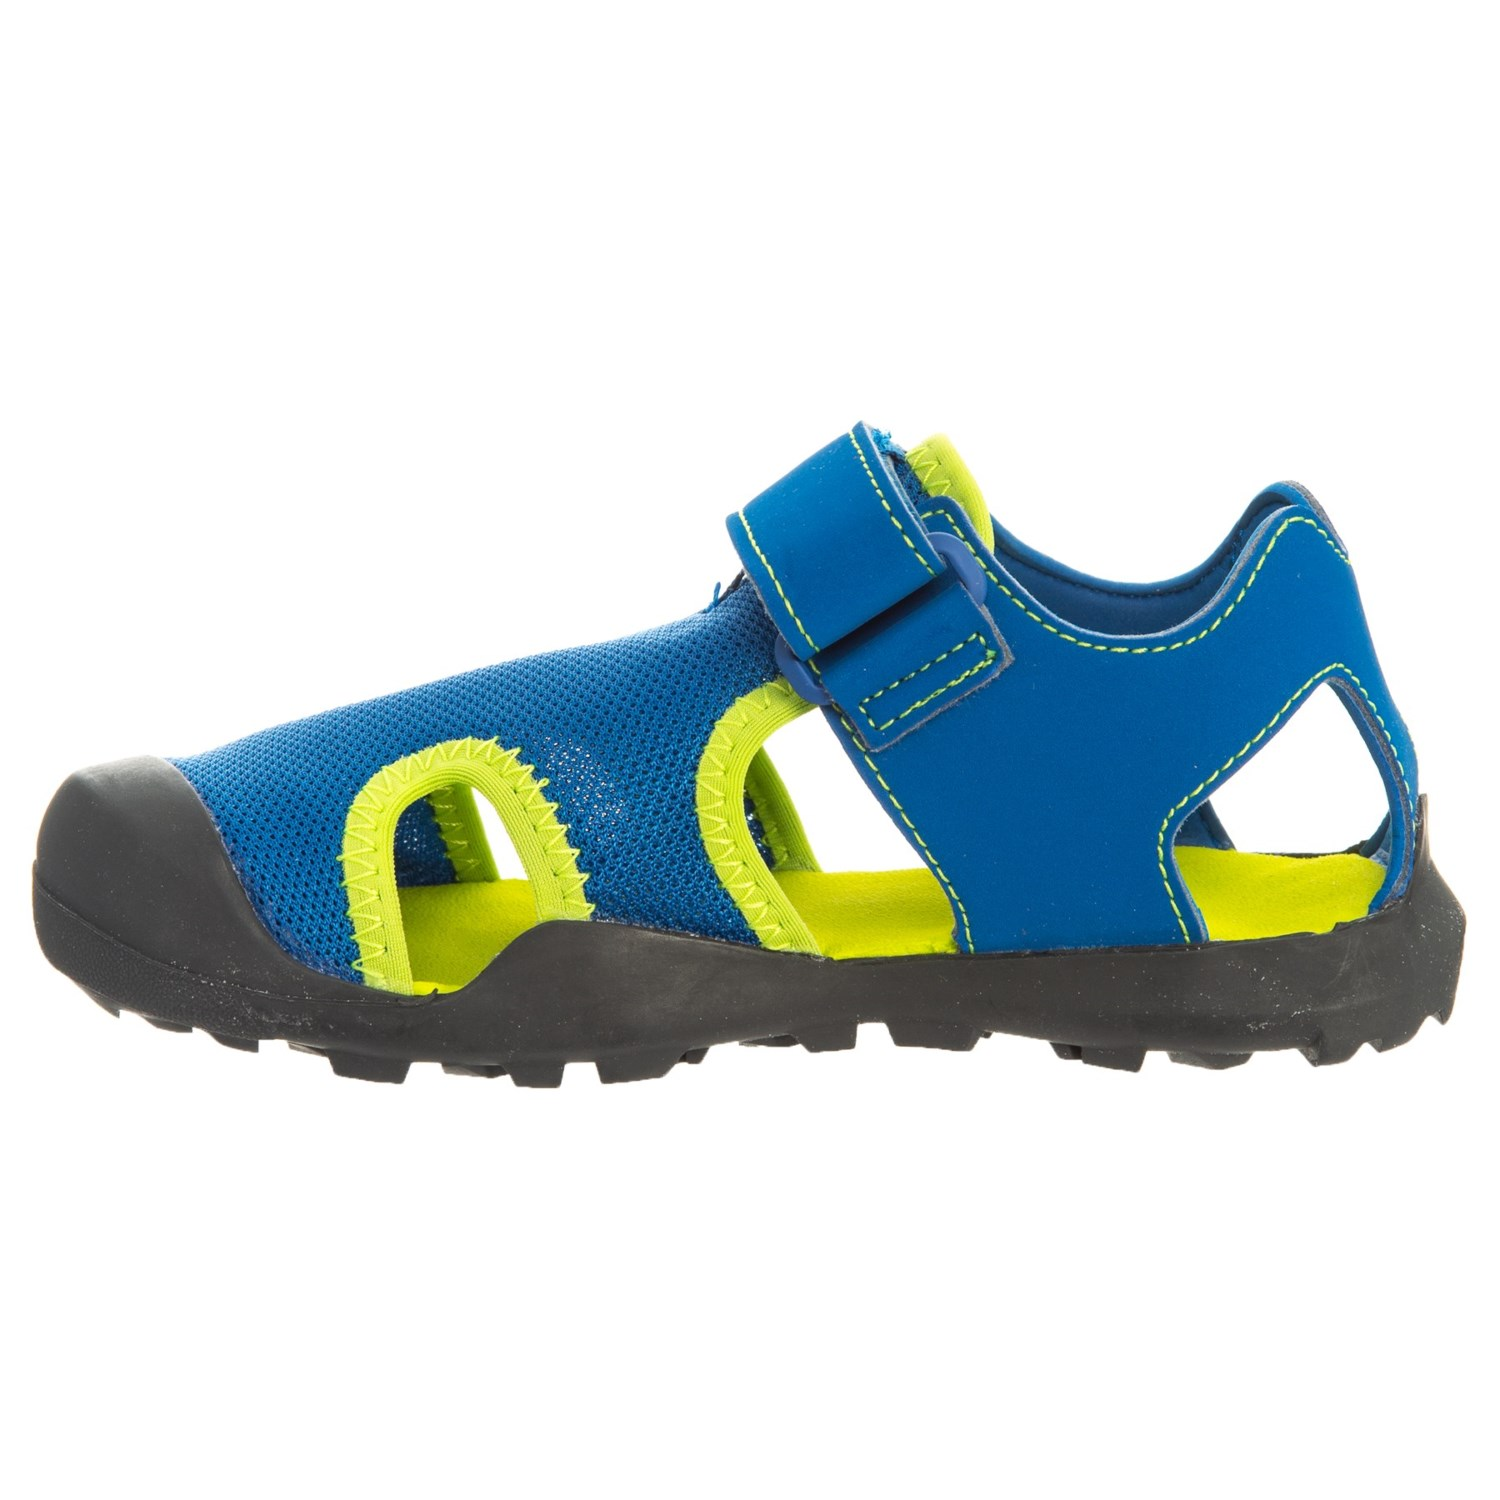 89a3fbec27b3 adidas Captain Toey Water Sports Sandals (For Little and Big Boys ...